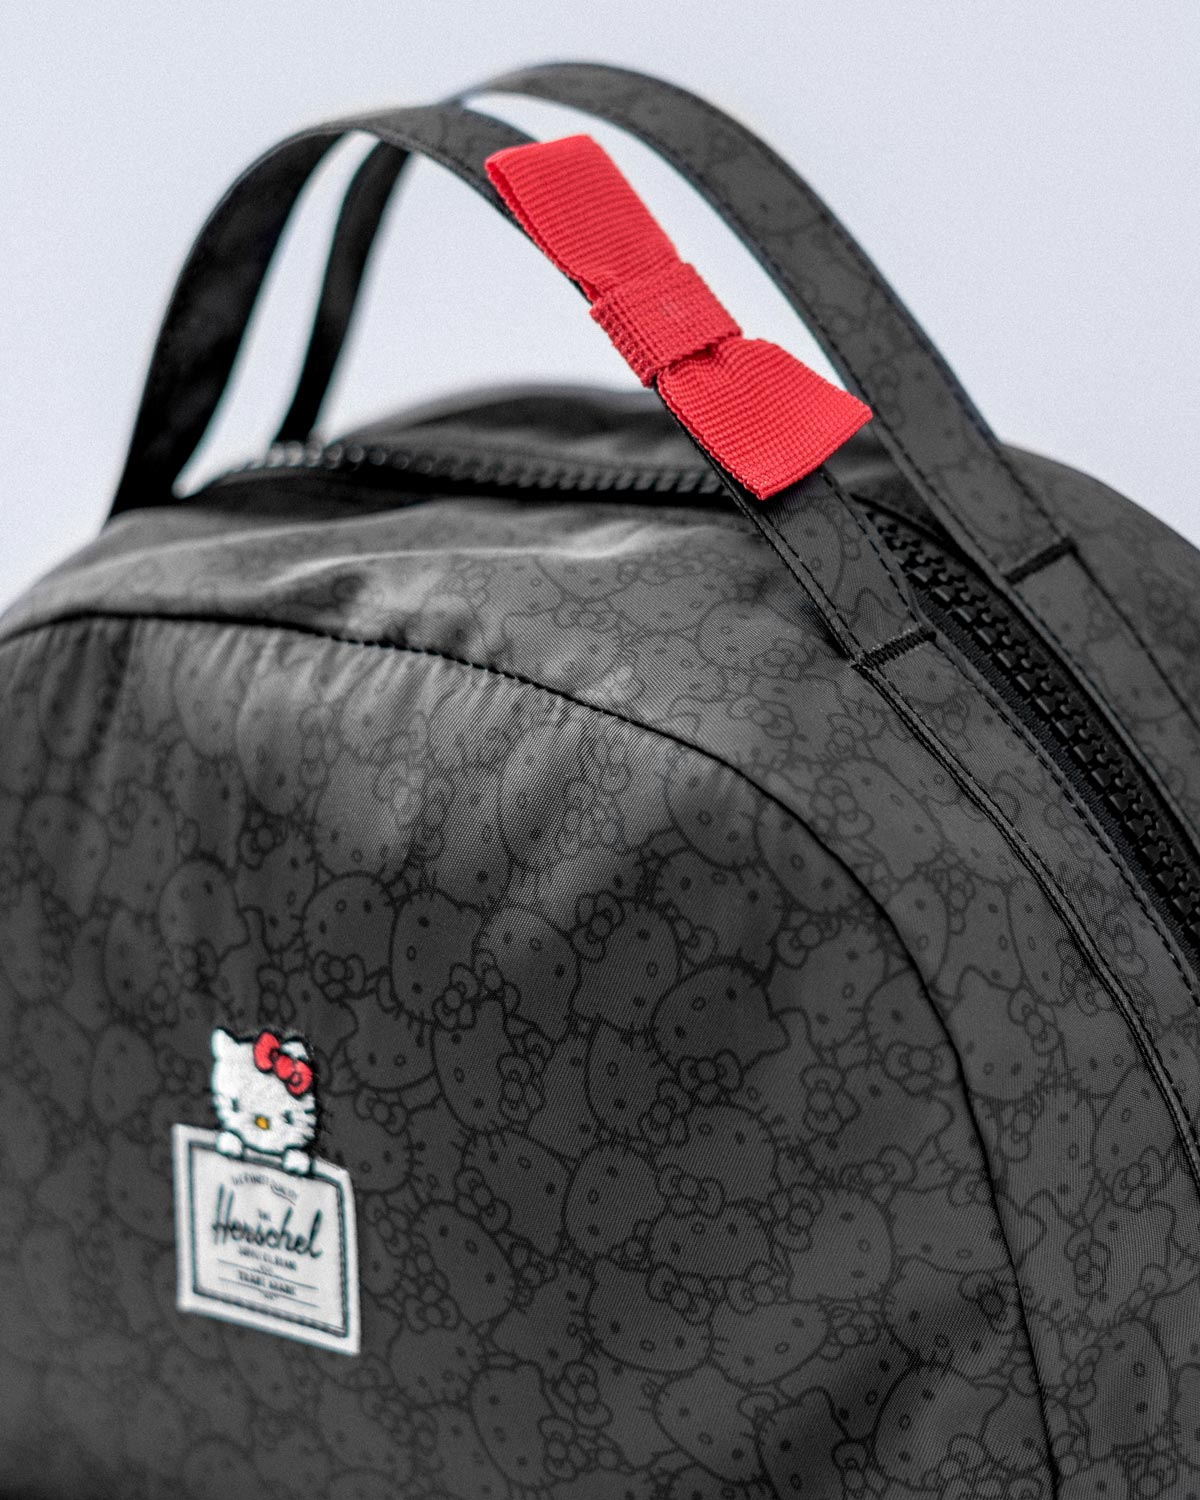 79642d707 Hello Kitty | Herschel Supply Company